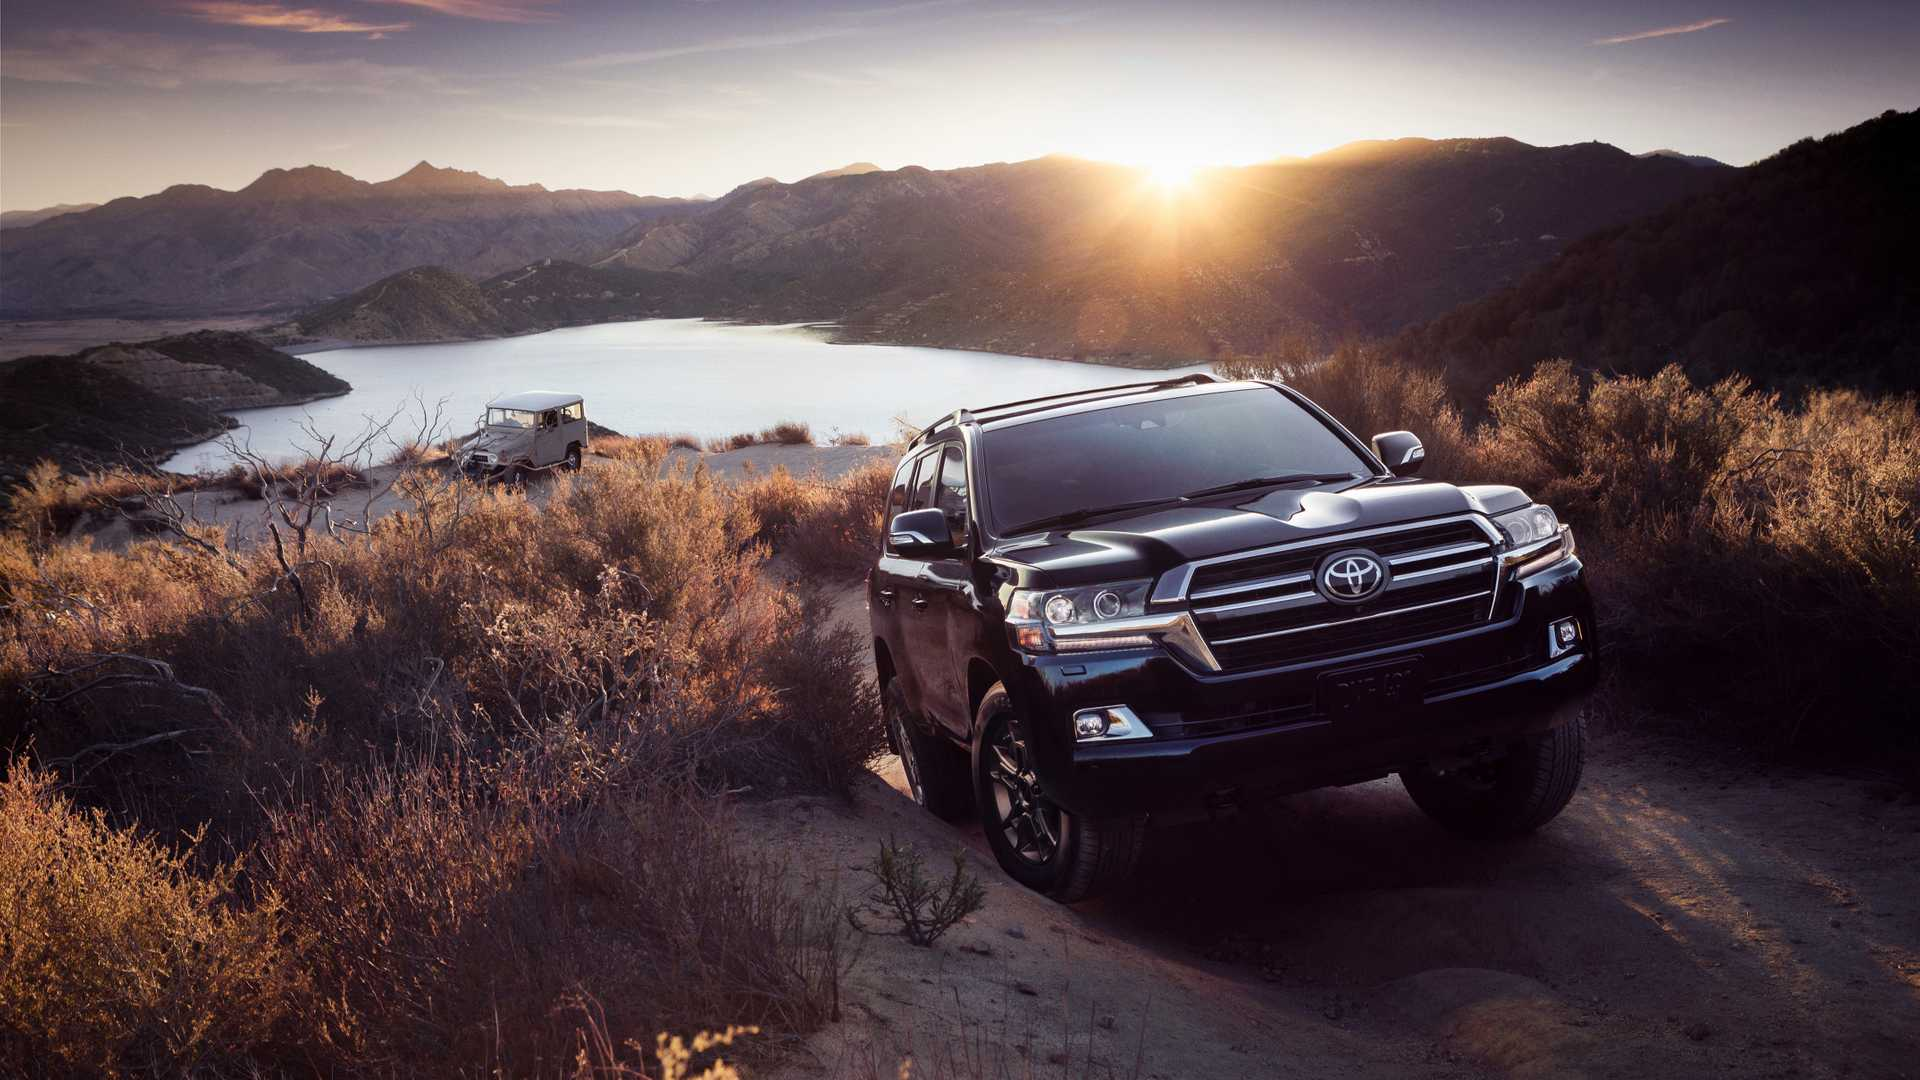 Eight-cylinder gasoline and diesel engines will no longer be available in the next generation of the Toyota Land Cruiser, CPO of the marque's Australia subsidiary said